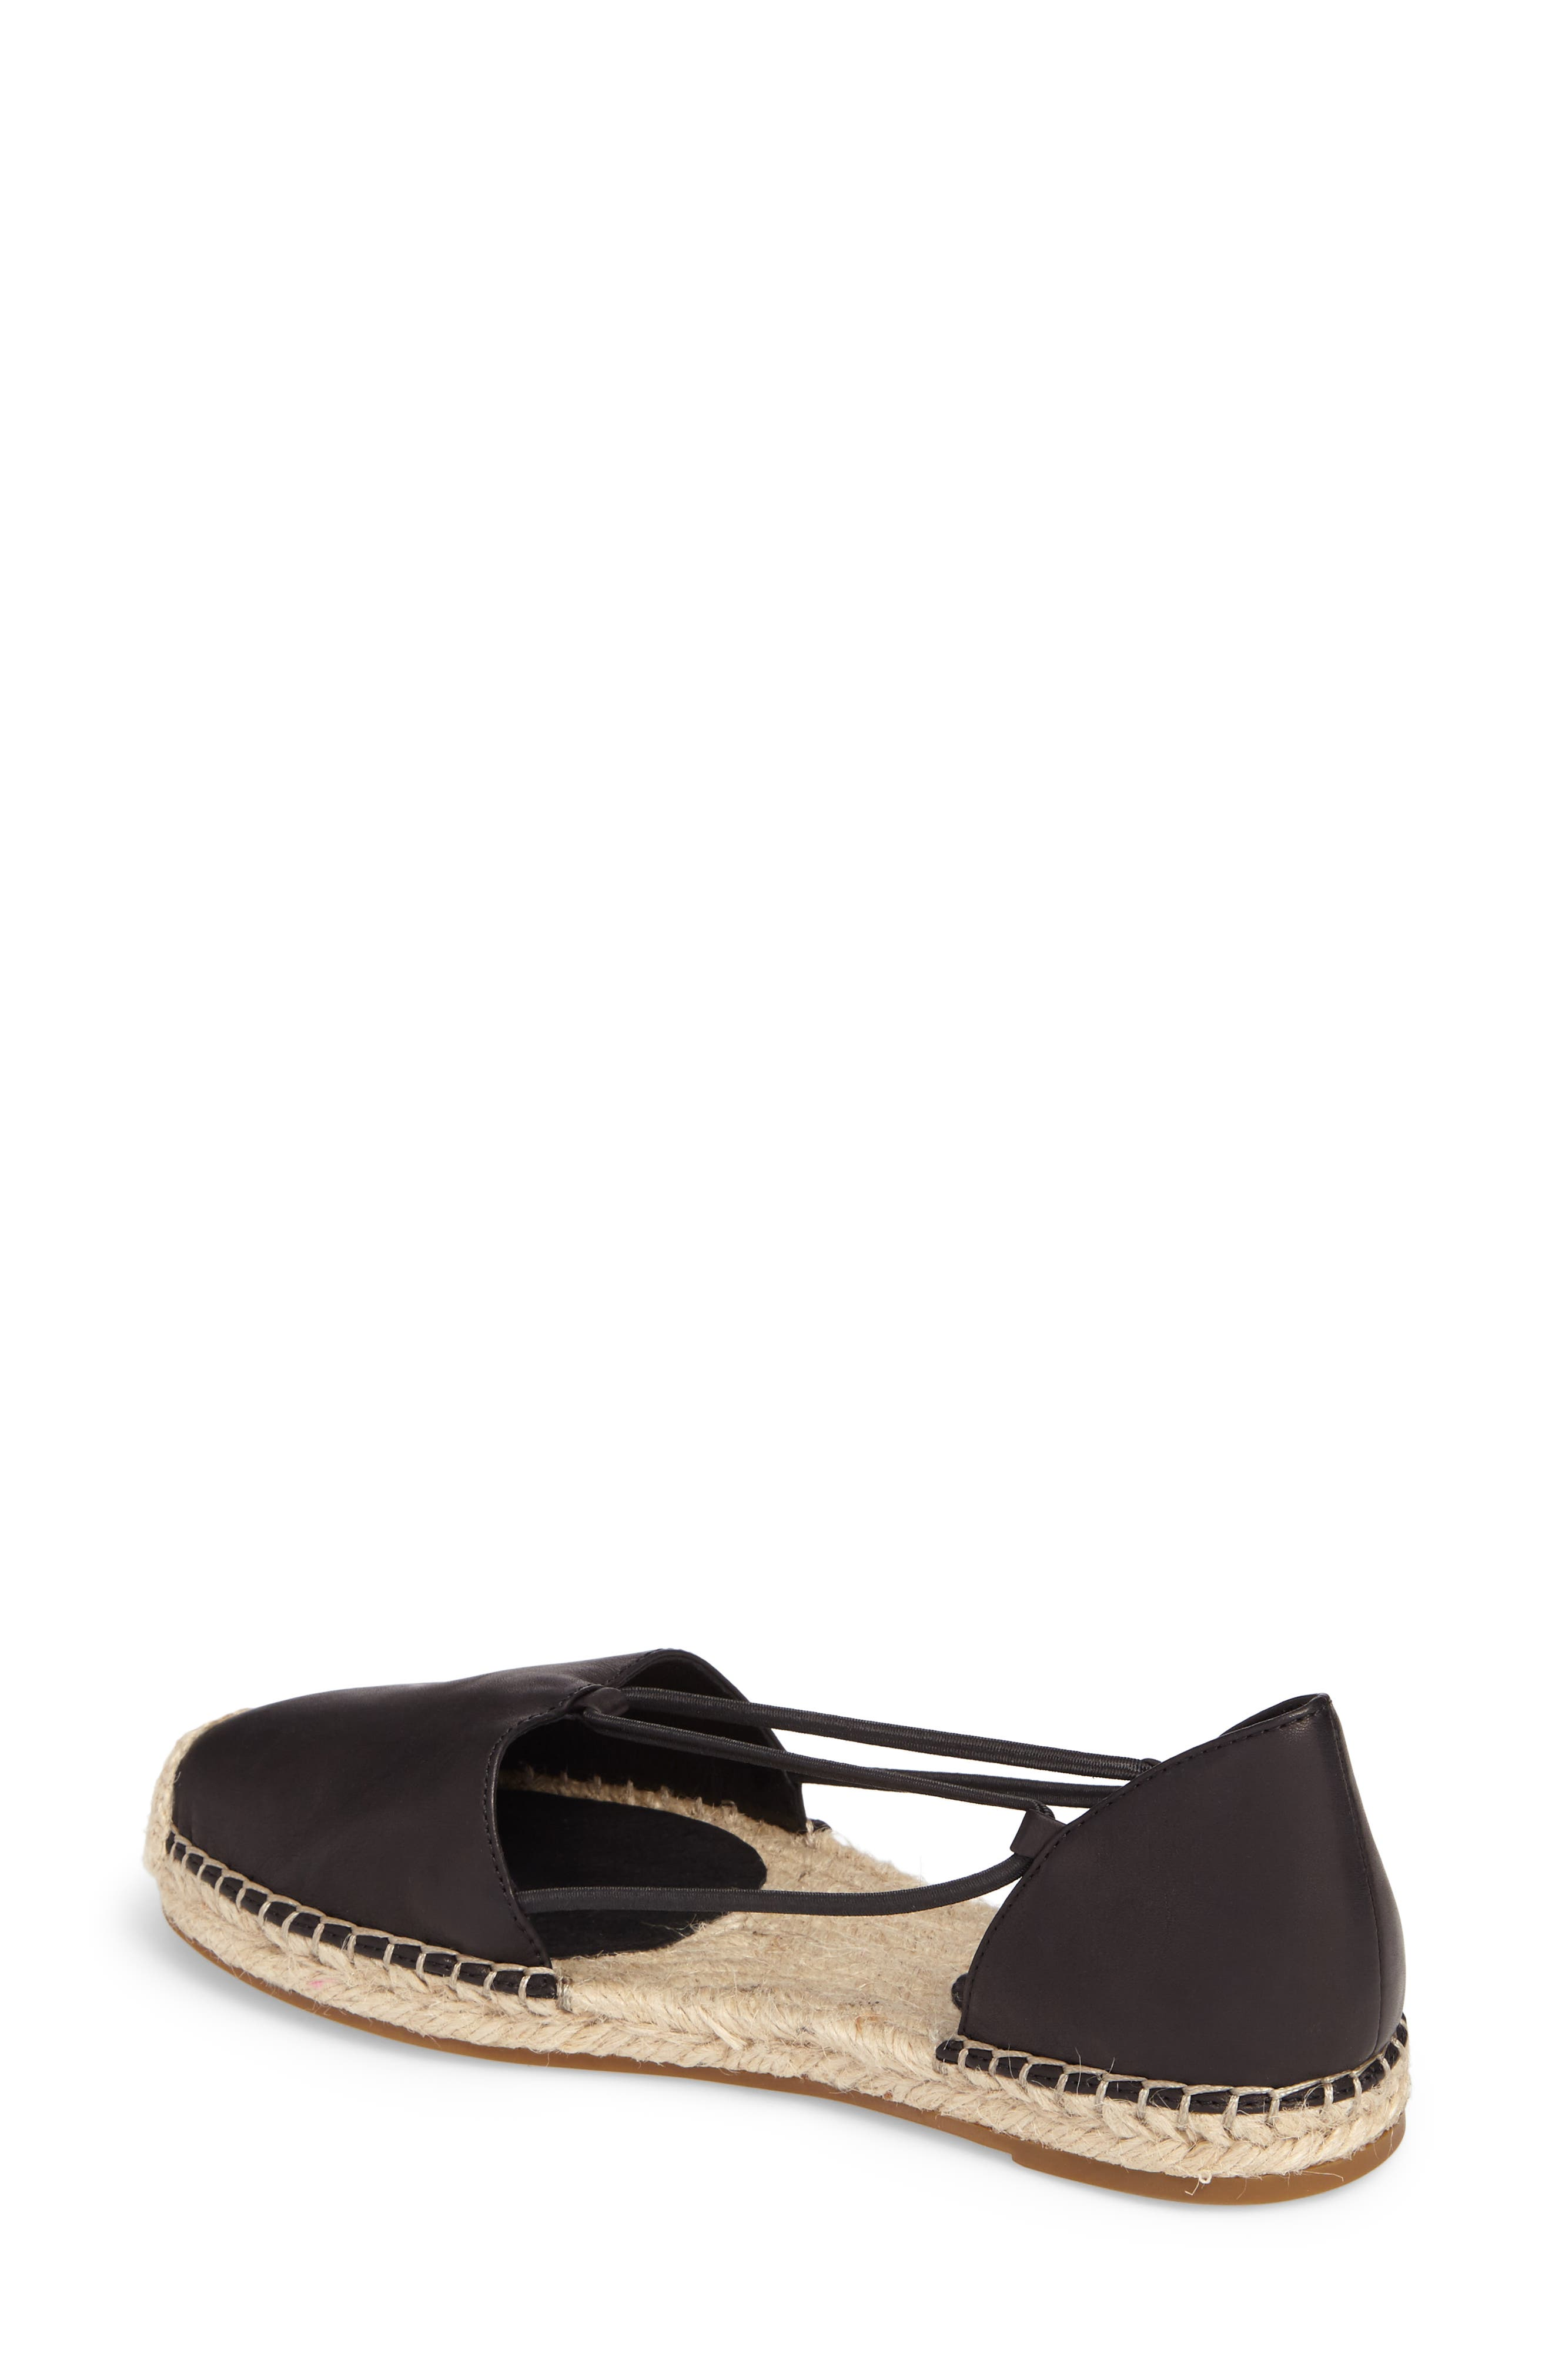 EILEEN FISHER, Lee Espadrille Flat, Alternate thumbnail 2, color, BLACK WASHED LEATHER